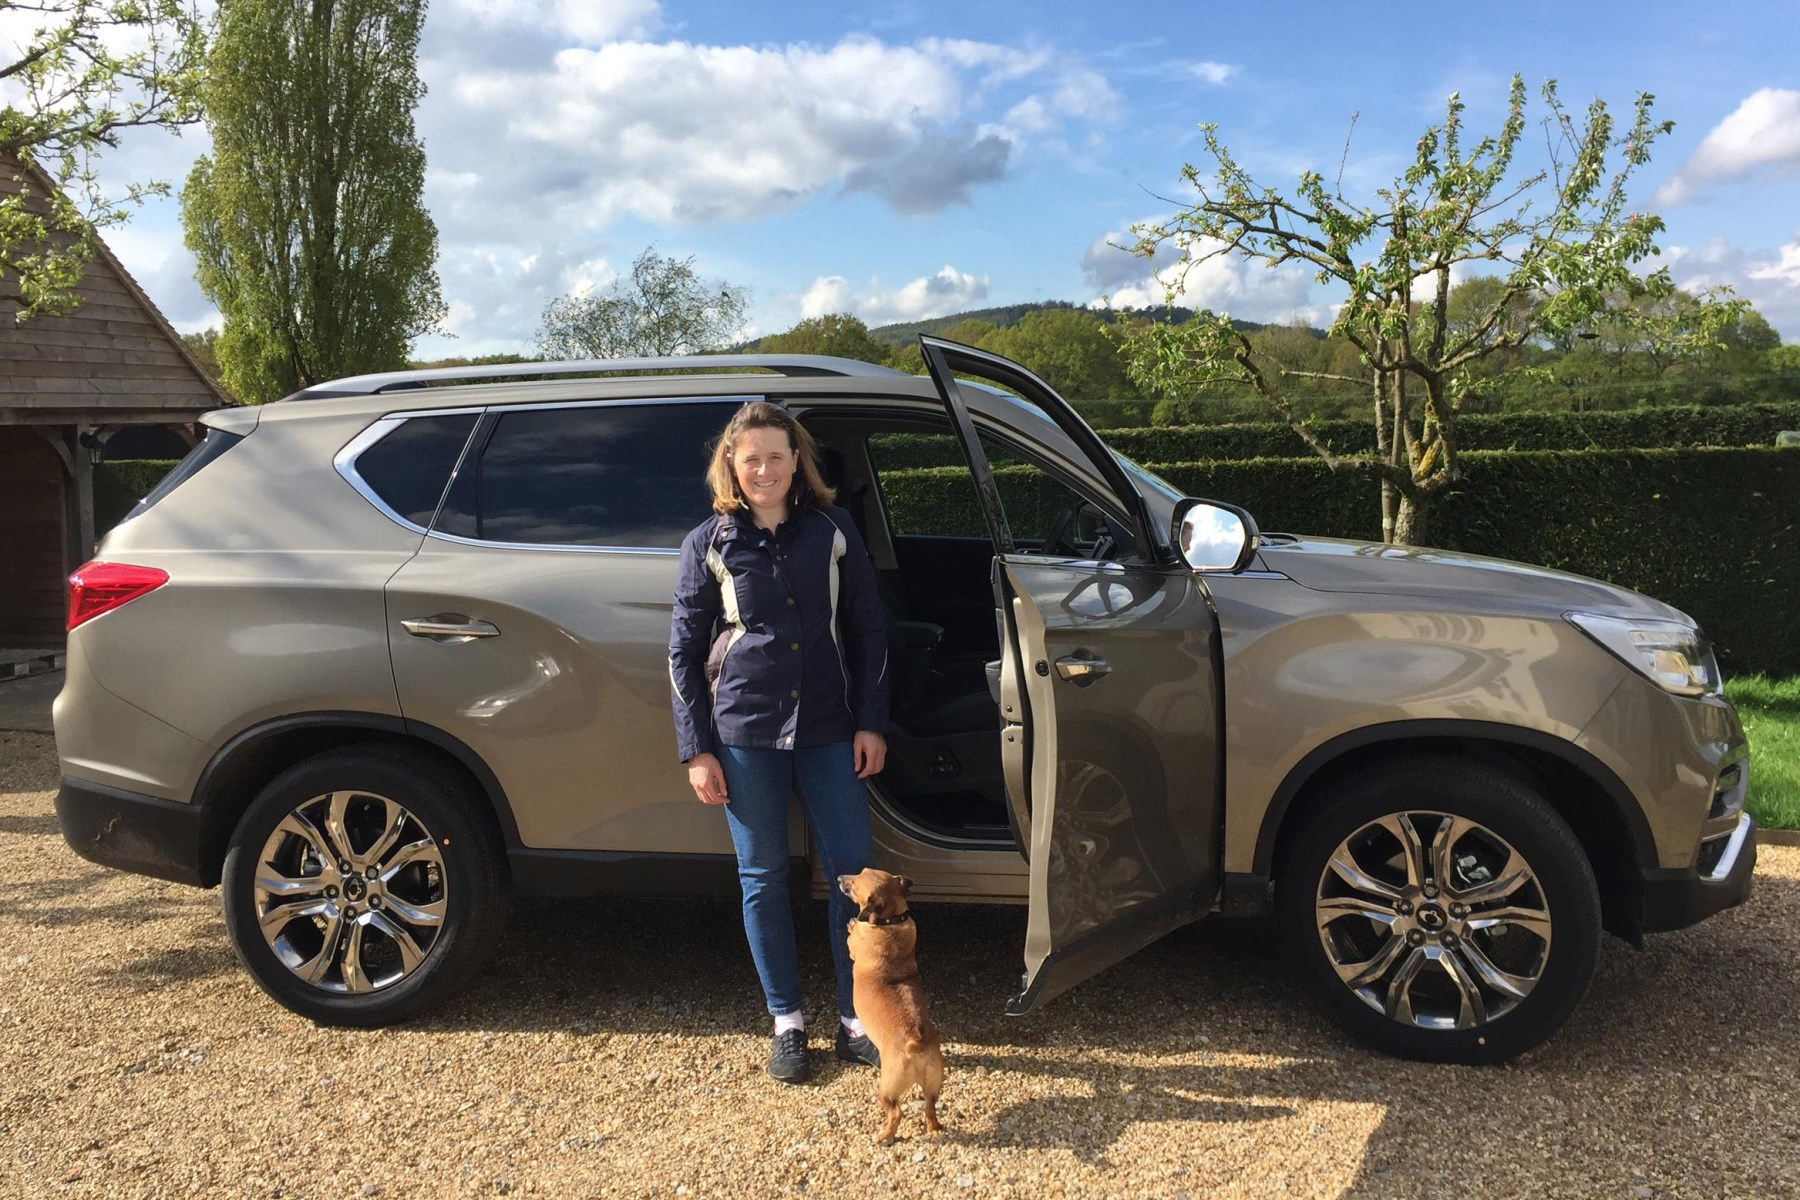 Pippa Funnell SsangYong Rexton